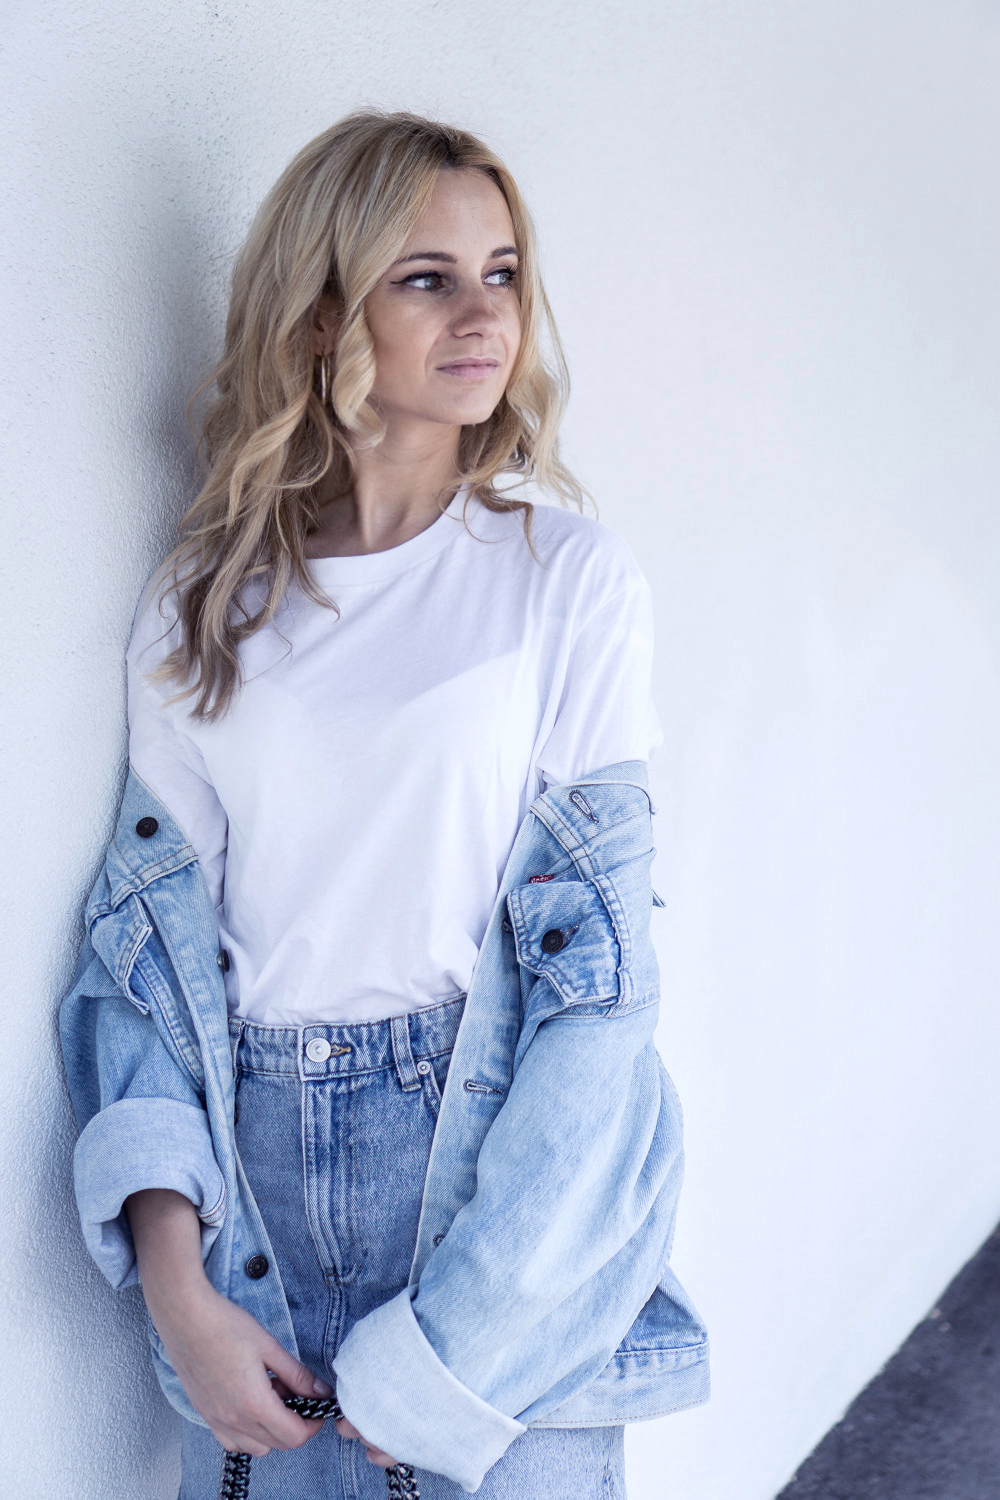 denim outfit skirt levis vintage jacket casual ootd street style fashion tumblr basic clothes